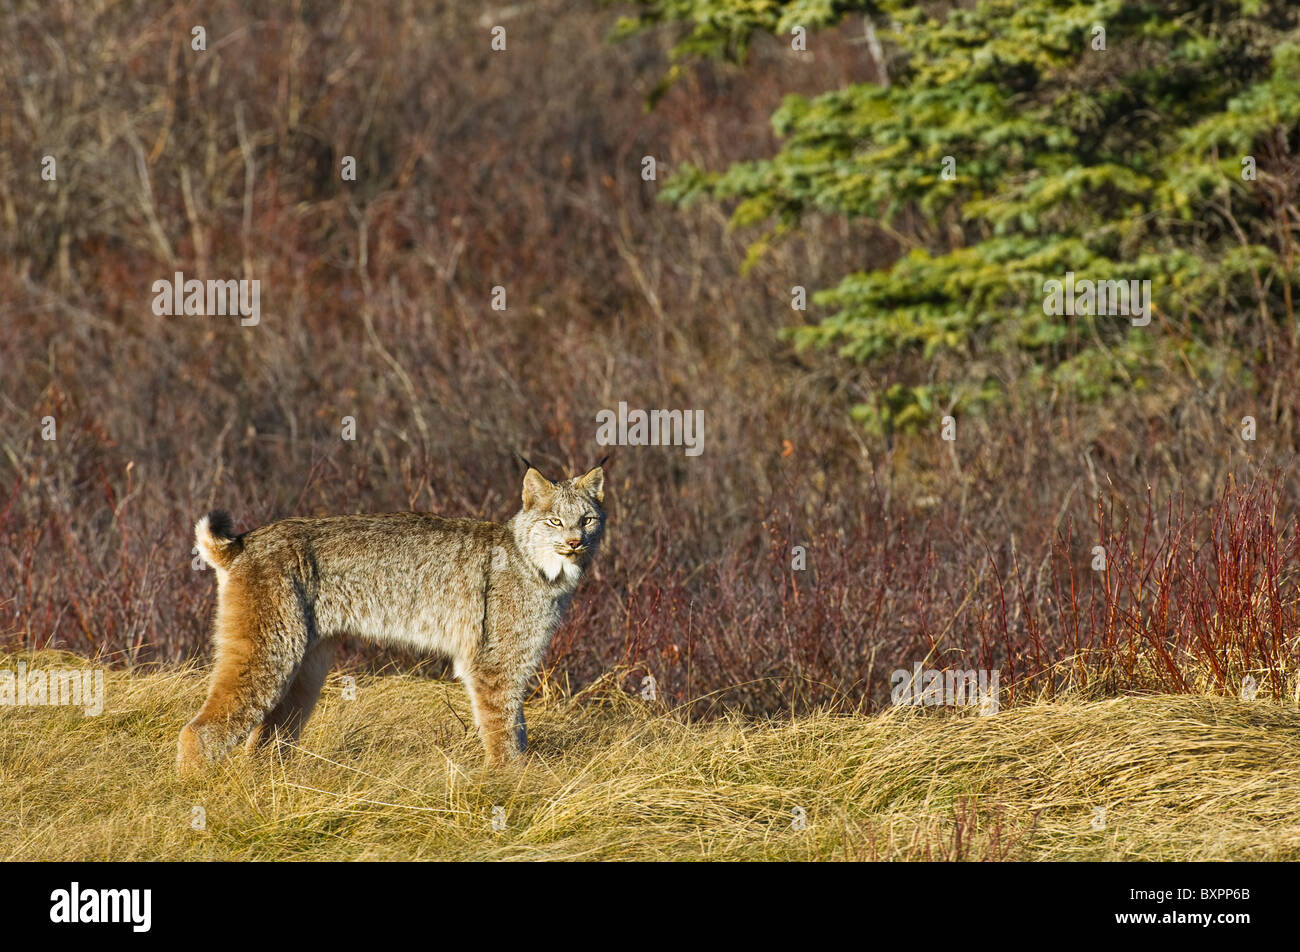 A wild Canadian Lynx - Stock Image